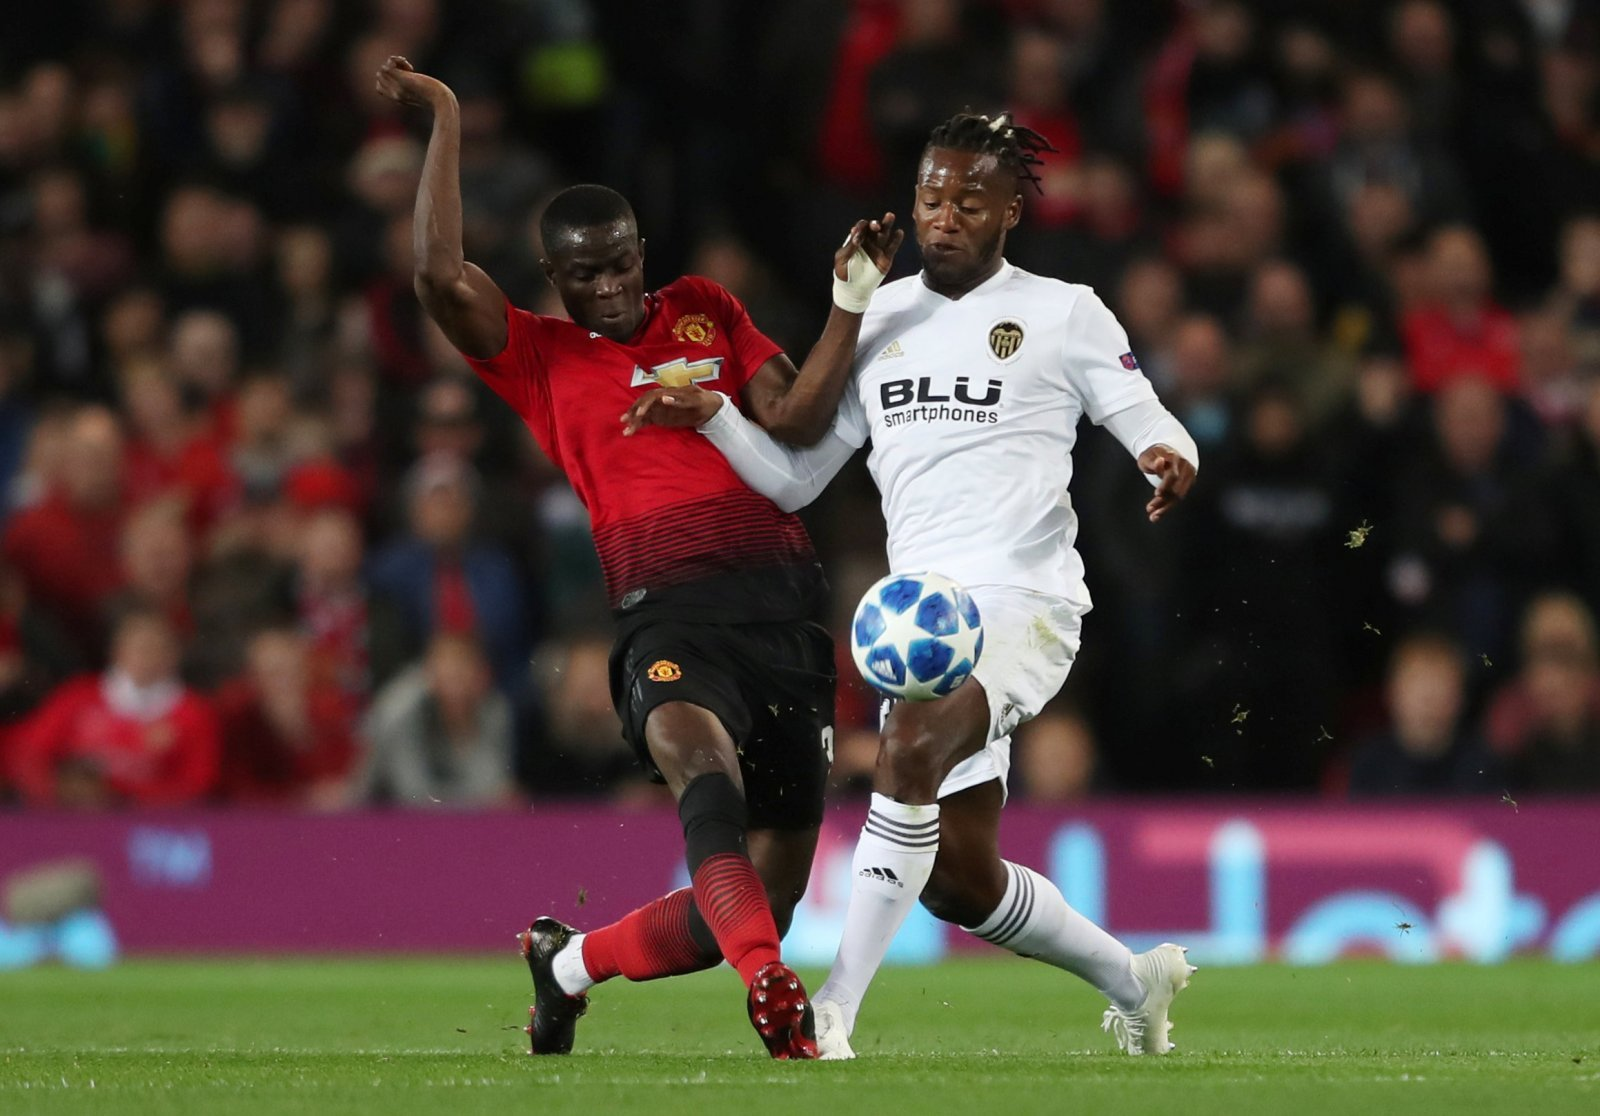 Arsenal: Eric Bailly is the ideal Laurent Koscielny replacement